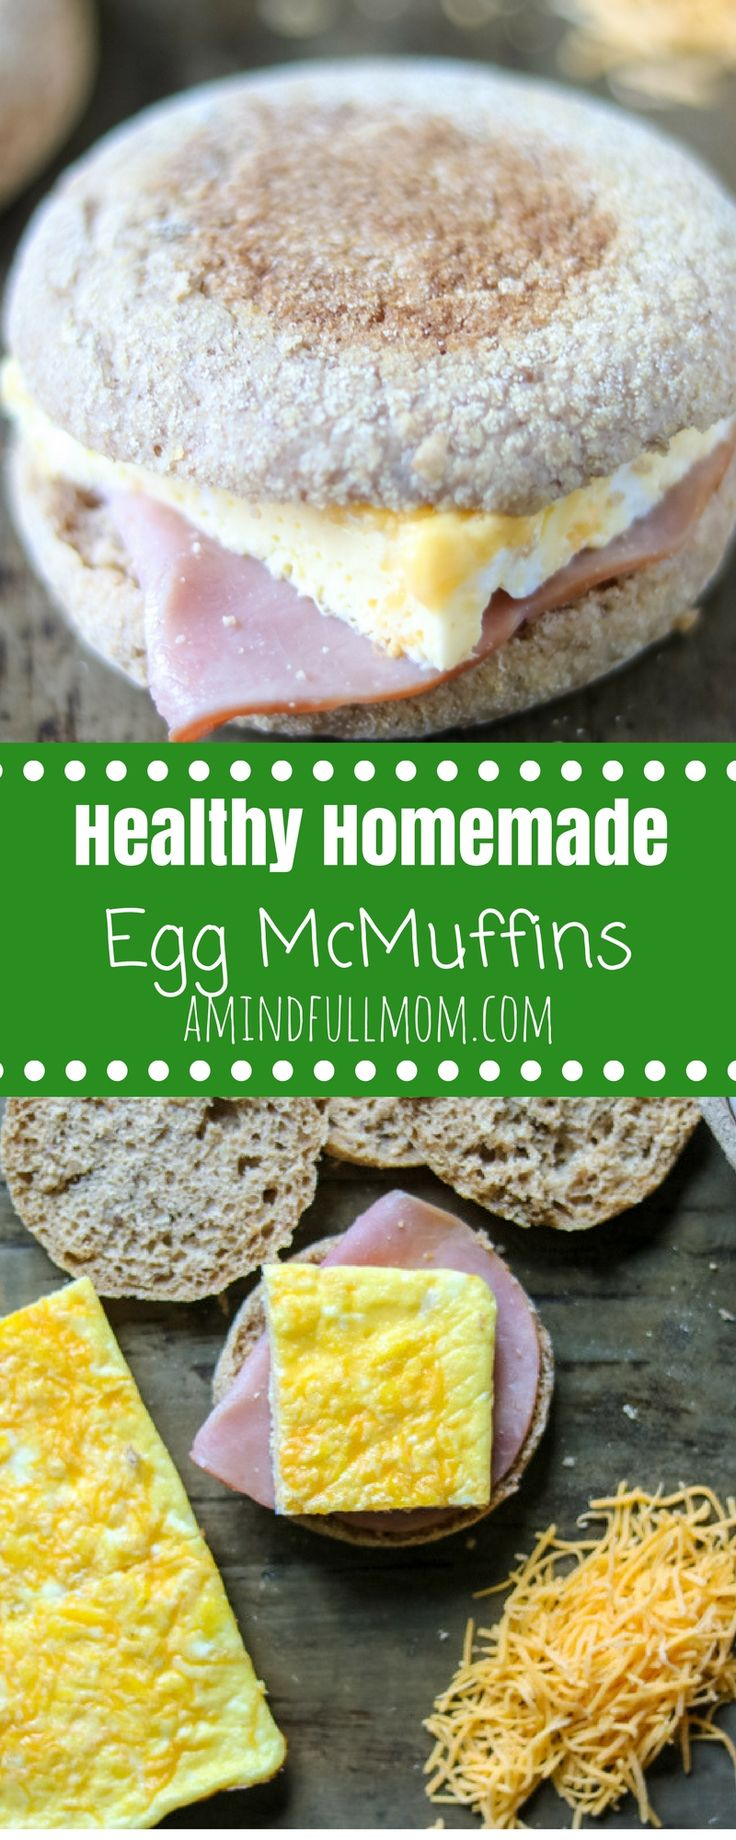 Healthy Homemade Egg McMuffin Sandwiches: Ham and egg breakfast sandwiches come together easily with a sheet pan hack for cooking eggs. Make ahead and freeze for an easy, wholesome on-the-go breakfast and skip the drive-thru permanently. The Cheesy Whole Wheat Egg Sandwiches are perfect for a crowd or for make-ahead recipe. #breakfast #healthybreakfast #eggs via @amindfullmom